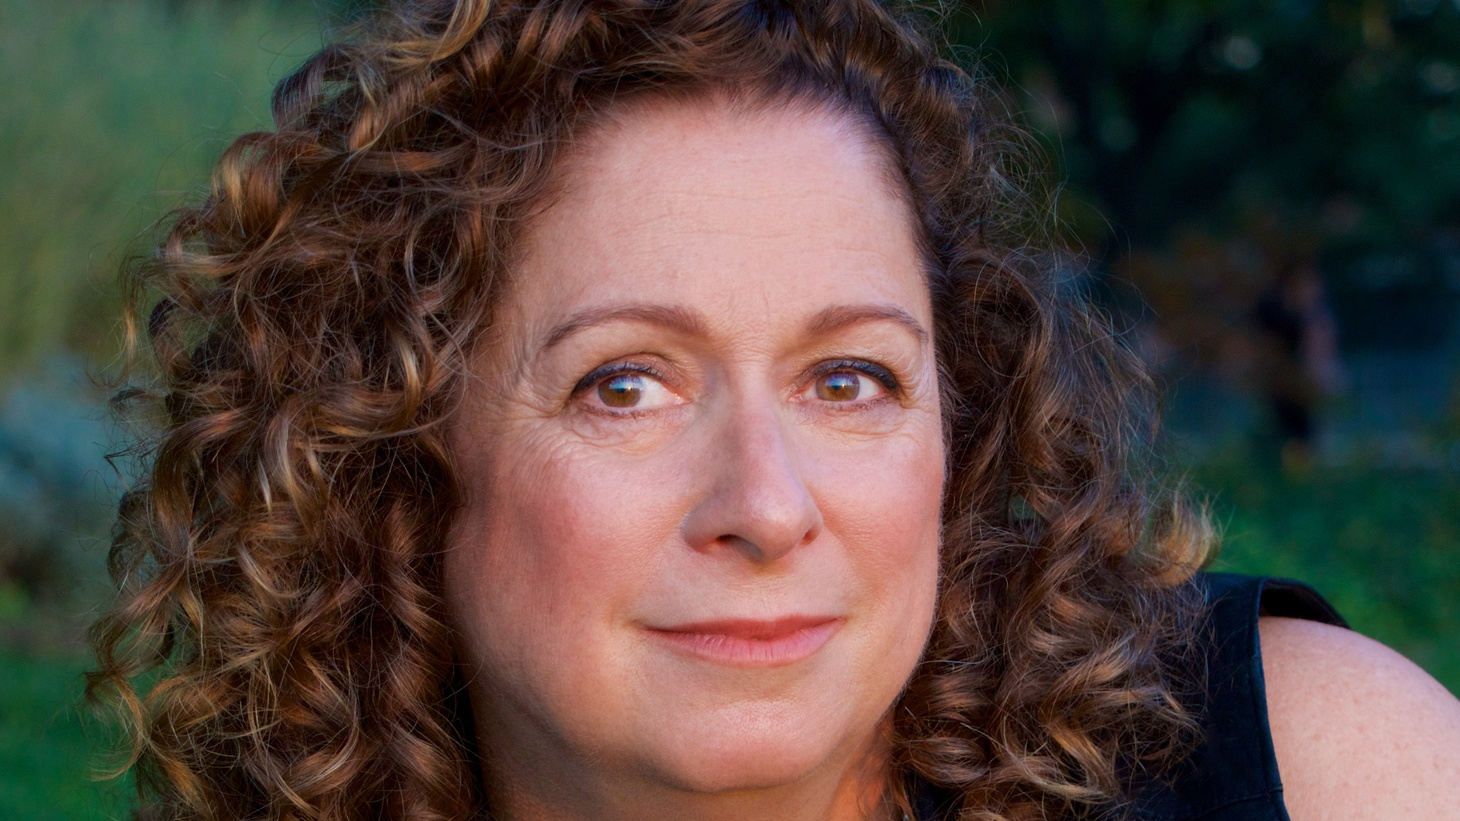 For Abigail Disney, growing up with that famous last name came with so much baggage, she almost ditched the Disney name altogether. But she says she eventually realized the name was asking something of her.